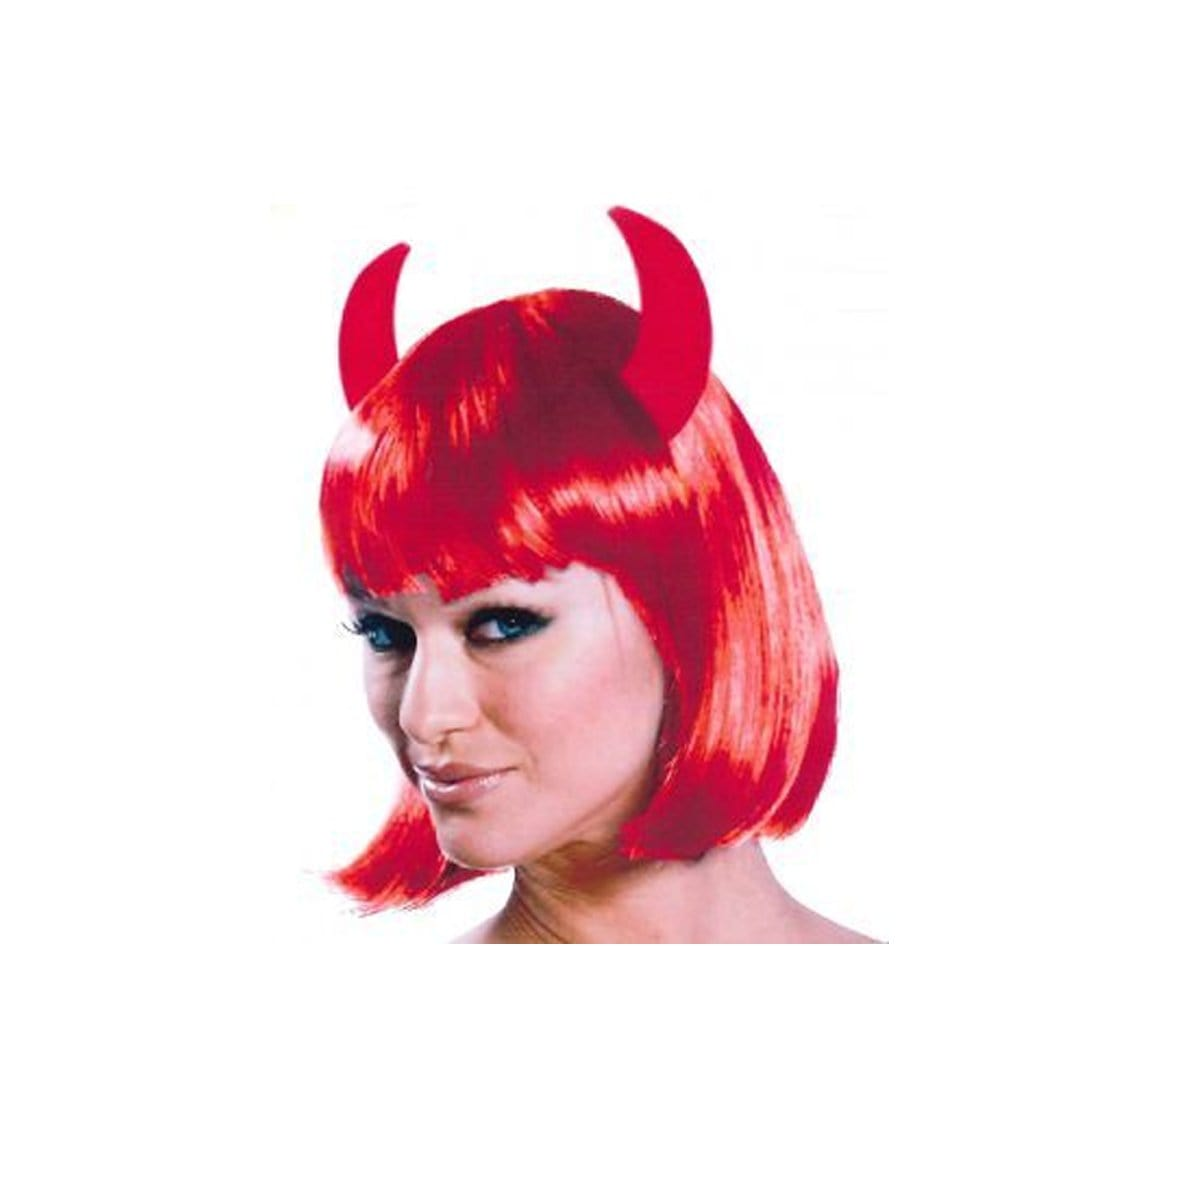 HALLOWEEN RED DEVIL WIG - Christmas World